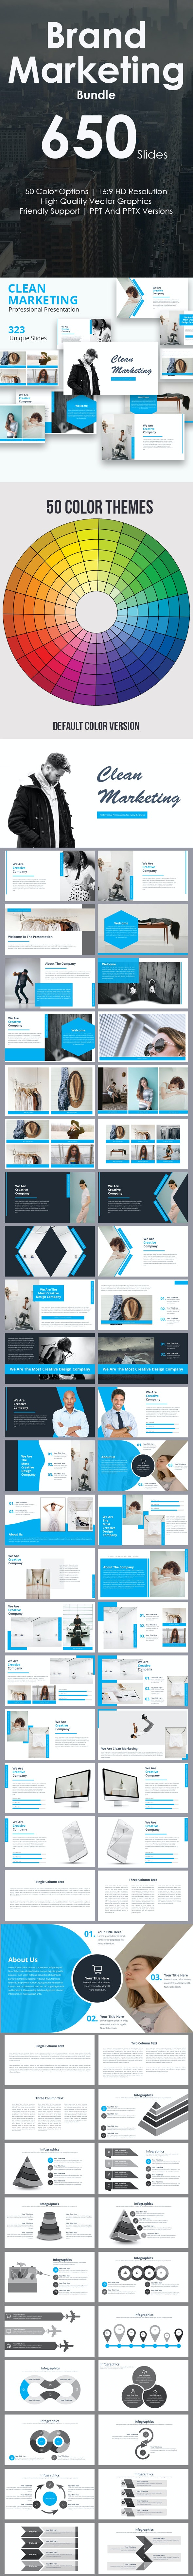 Brand Marketing Powerpoint Presentations Bundle - Business PowerPoint Templates